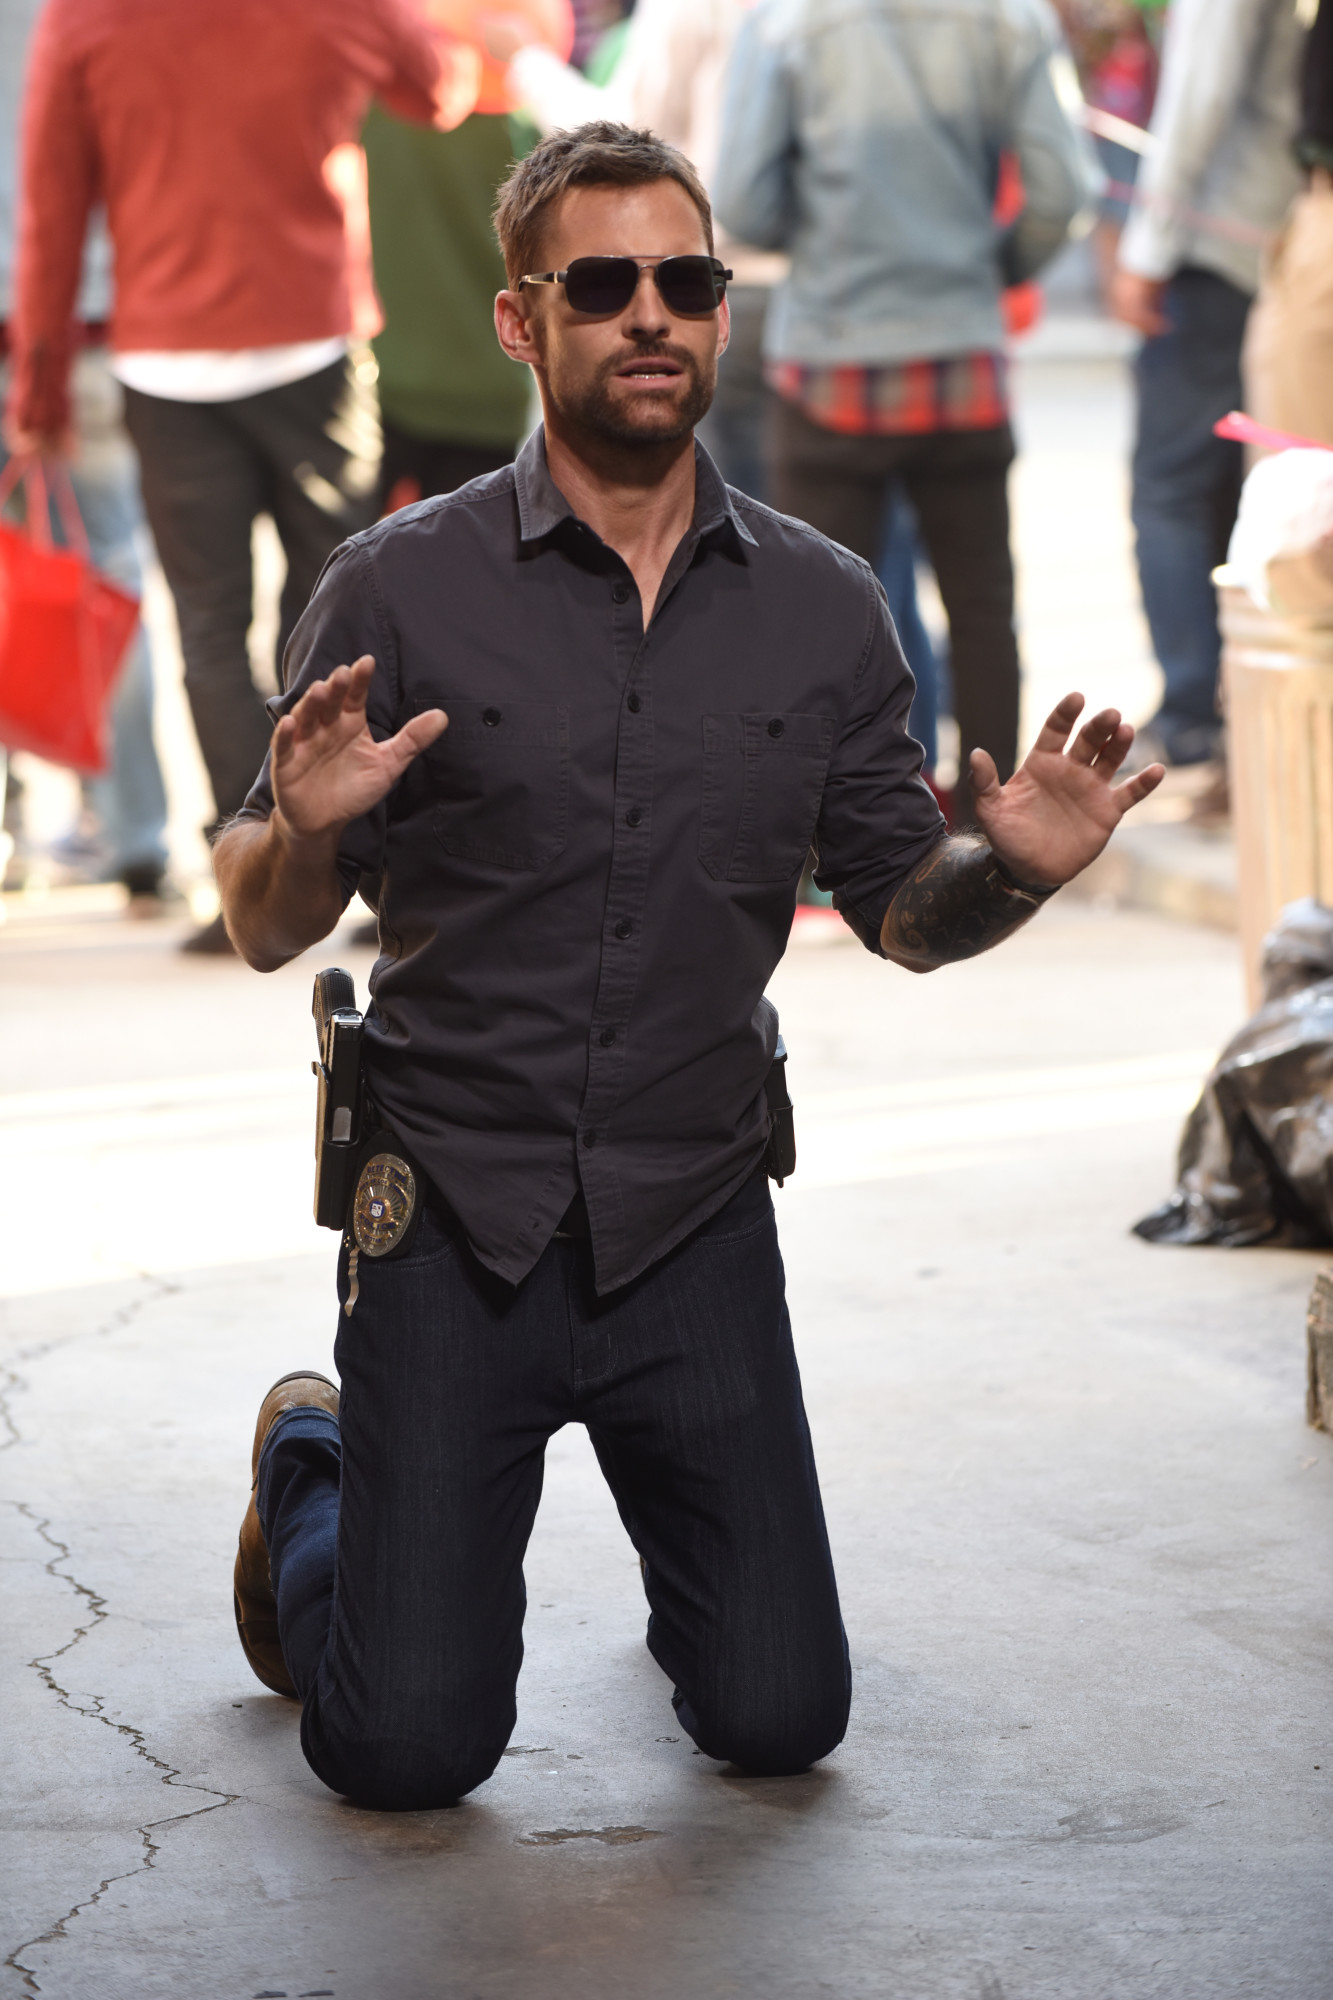 """LETHAL WEAPON: Seann William Scott in the """"Bad Santas"""" fall finale episode of LETHAL WEAPON airing Tuesday, Dec. 4 (9:00-10:00 PM ET/PT) on FOX. ©2018 Fox Broadcasting Co. CR: Ray Mickshaw/FOX"""